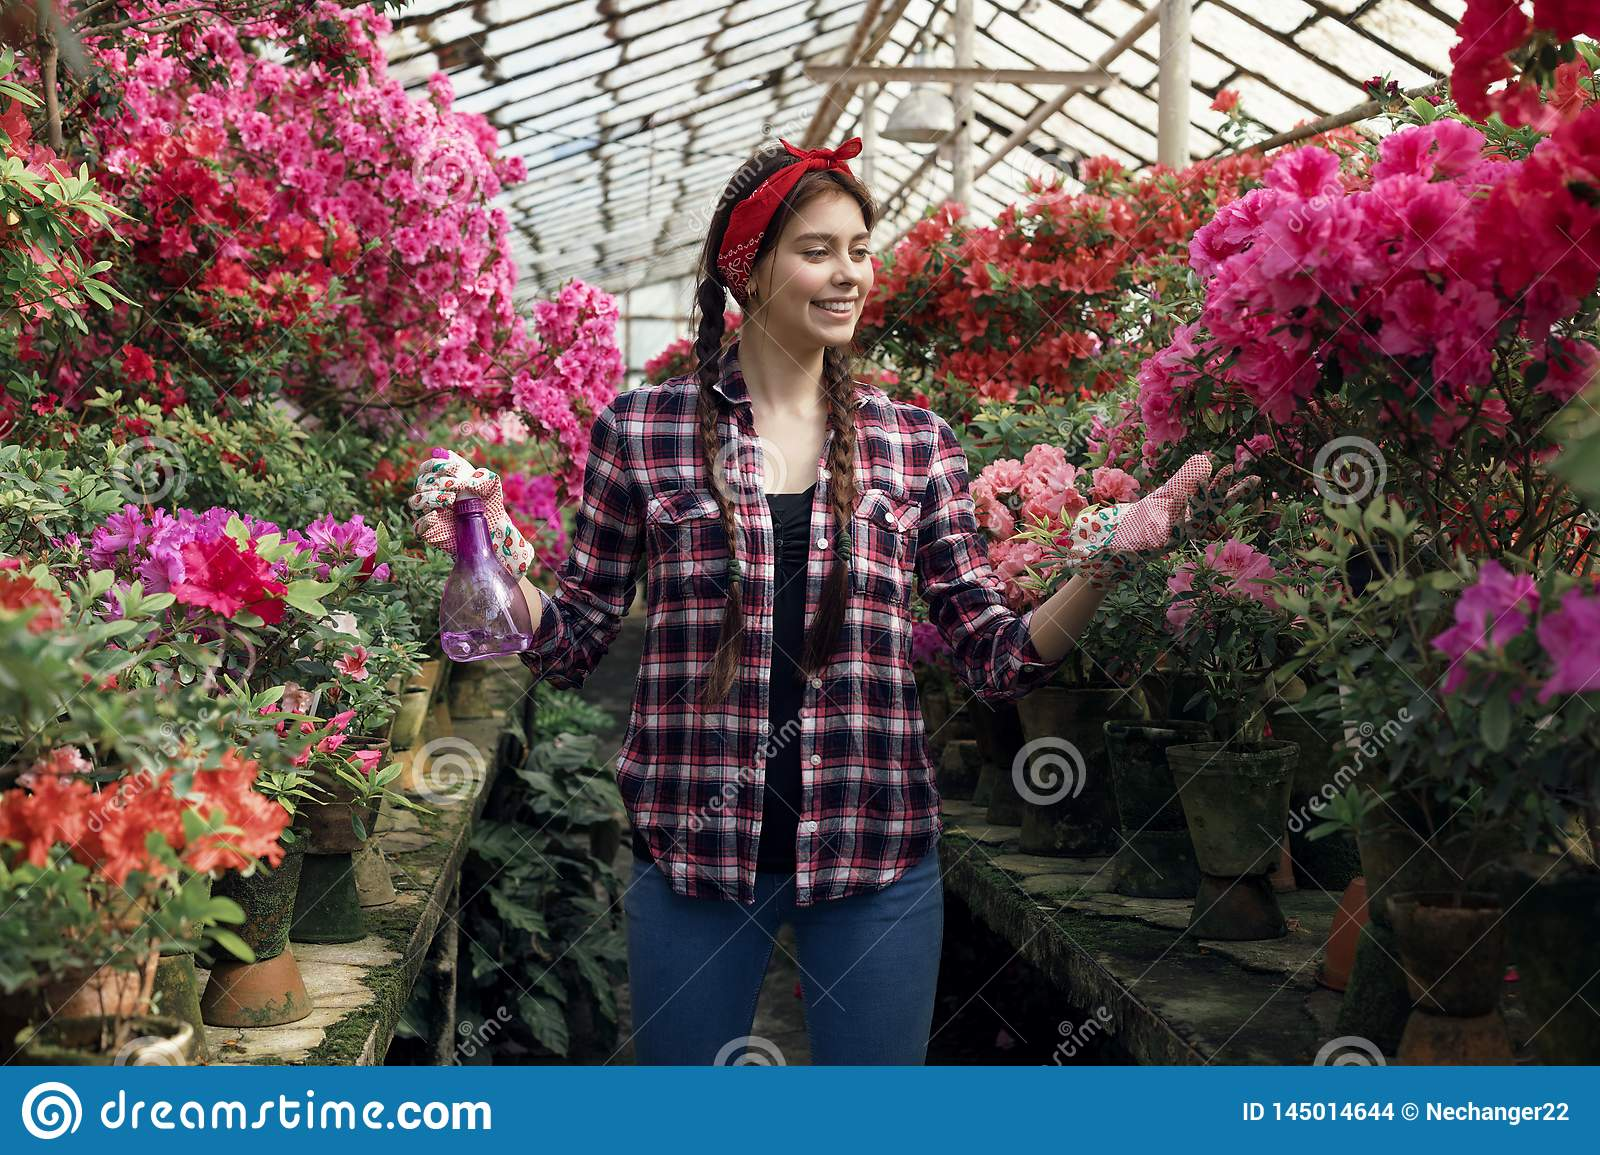 Happy brunette woman gardener with pink and red flowers in a greenhouse wearing plaid shirt with a red headband